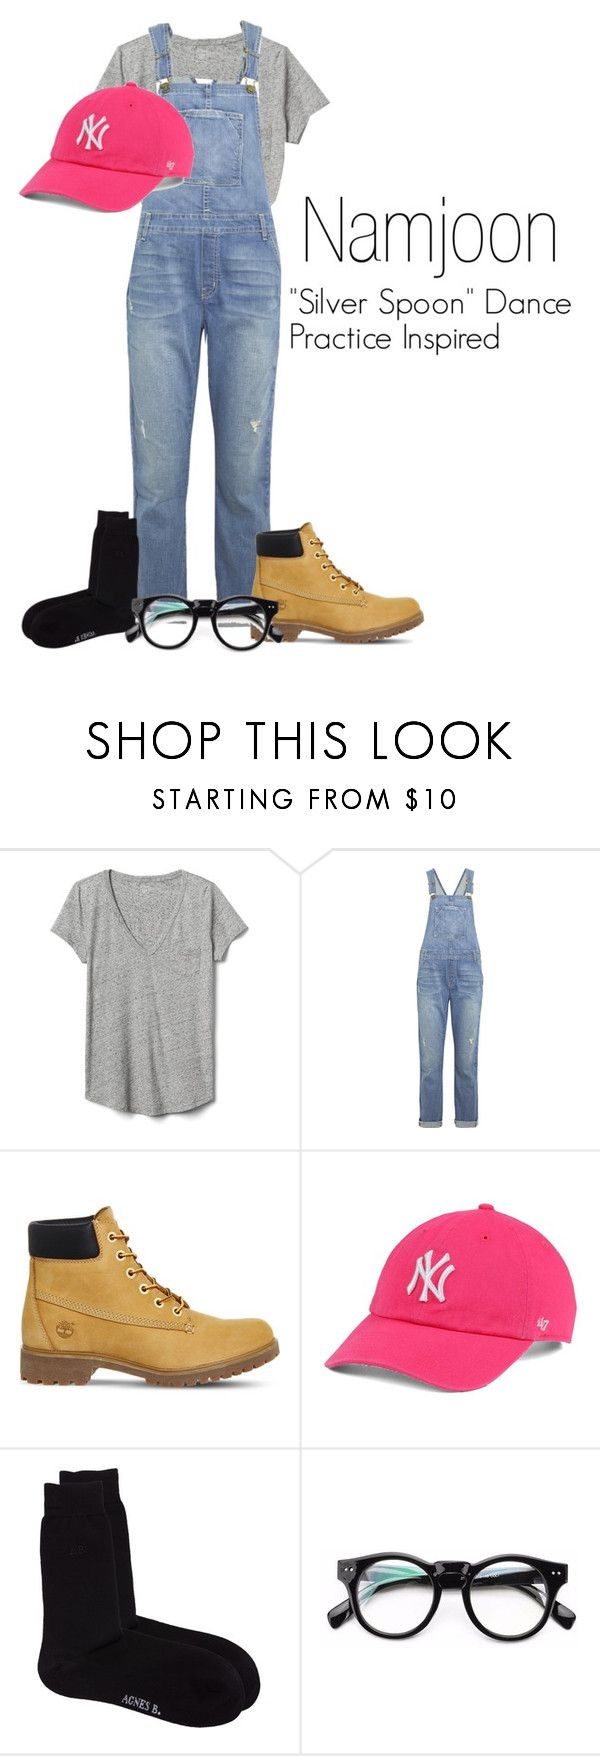 """Namjoon's ""Silver Spoon"" Dance Practice Inspired Outfit"" by mochimchimus on Polyvore featuring Gap, Current/Elliott, Timberland, '47 Brand, agnès b. and bts"